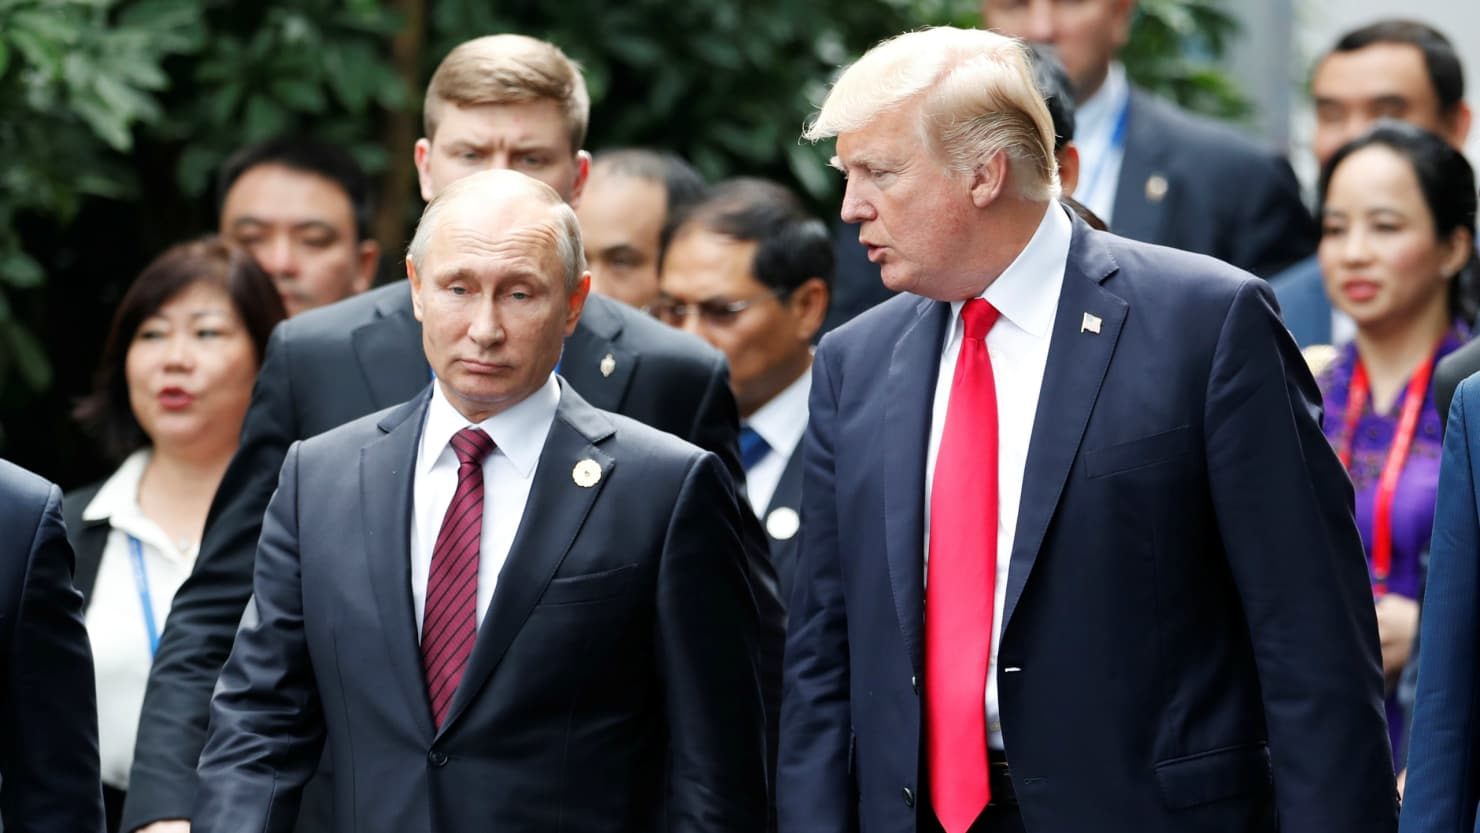 """Kim Jong-un said I'm an """"old lunatic,"""" Vlad. You don't think I'm old, do  you?"""